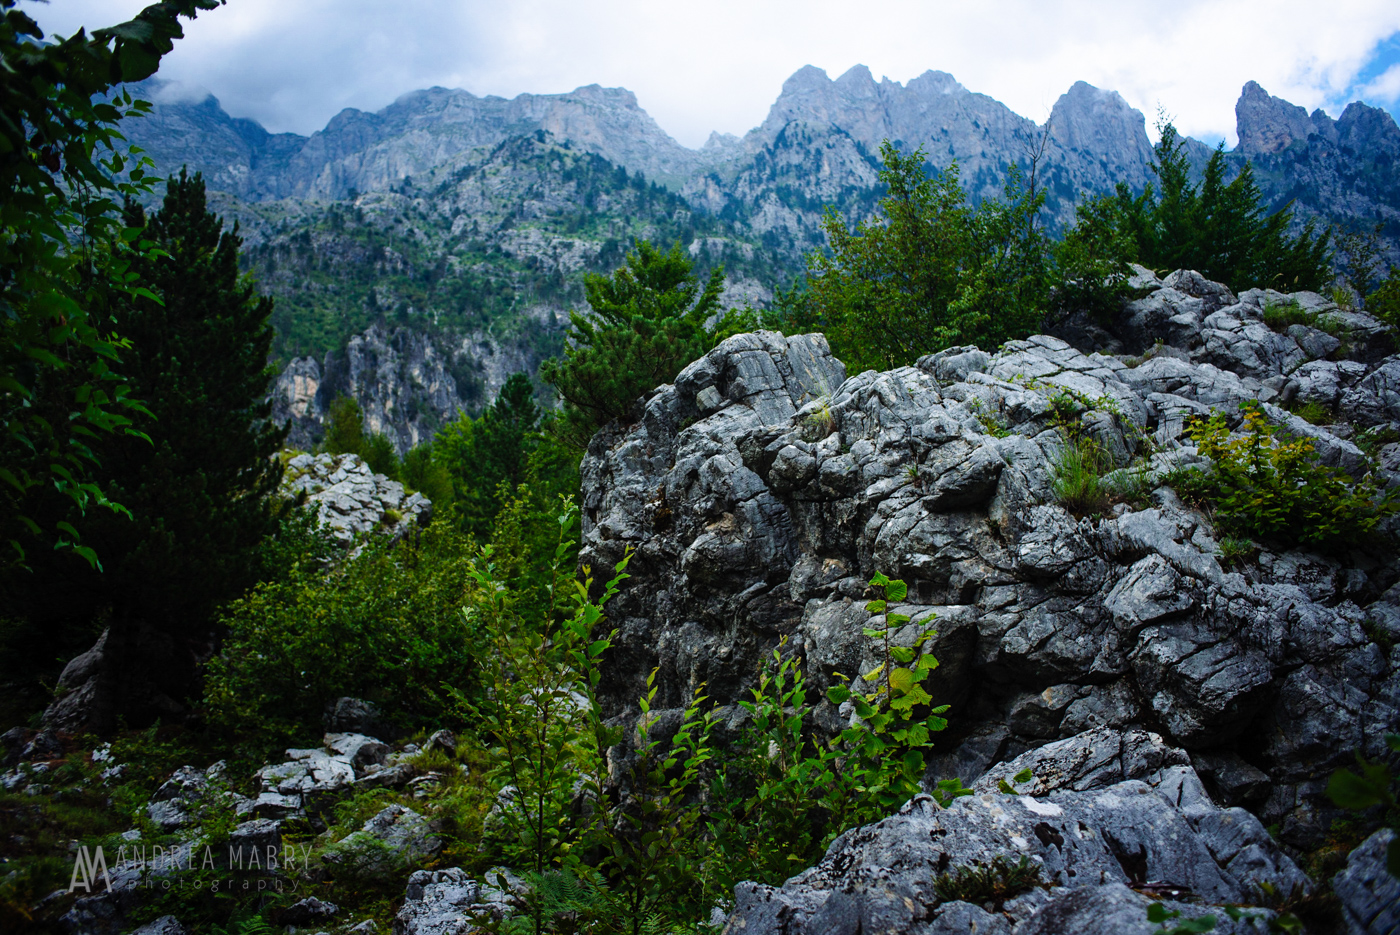 I had never experienced the feeling of being in a fishbowl like in Valbona. Tall, steep mountains rise on both sides of the valley the town is set in.